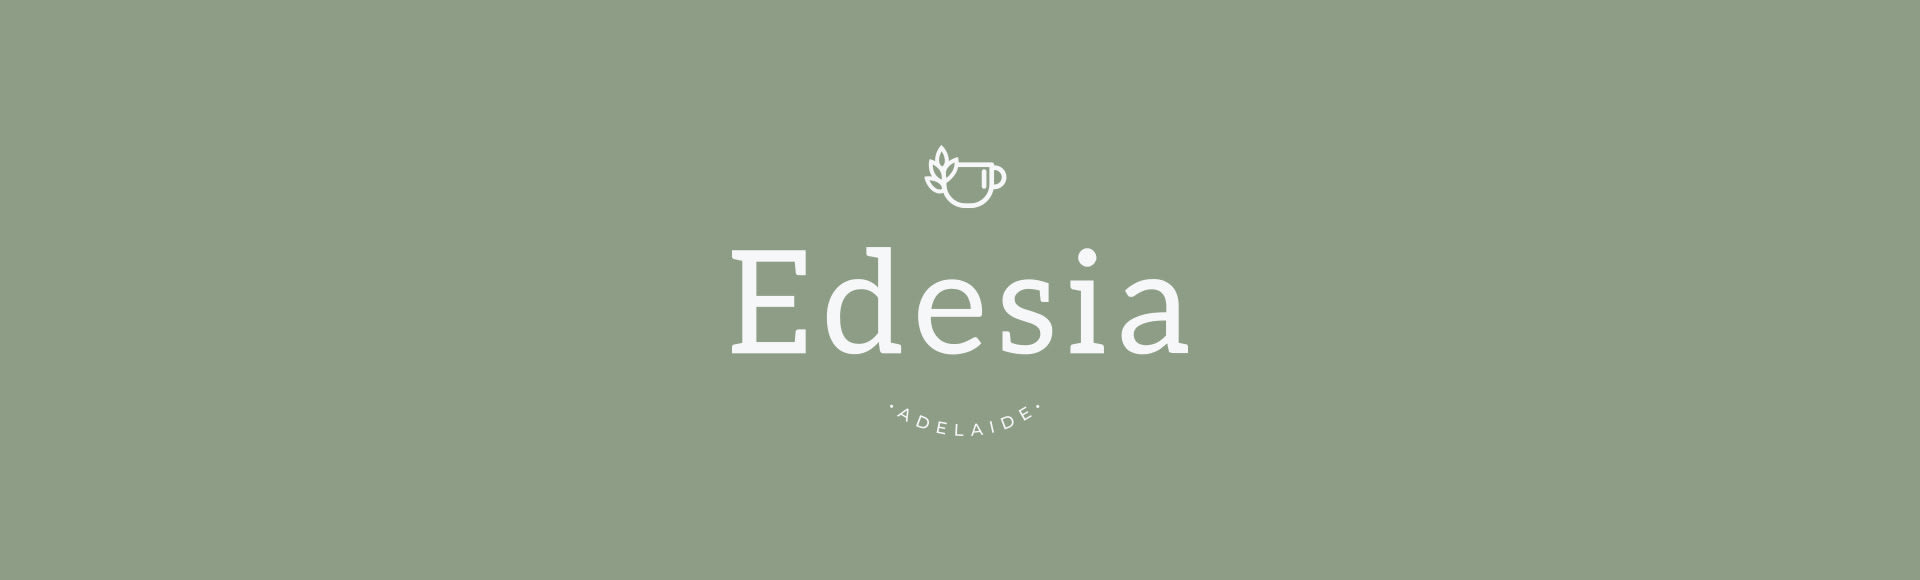 Edesia website banner